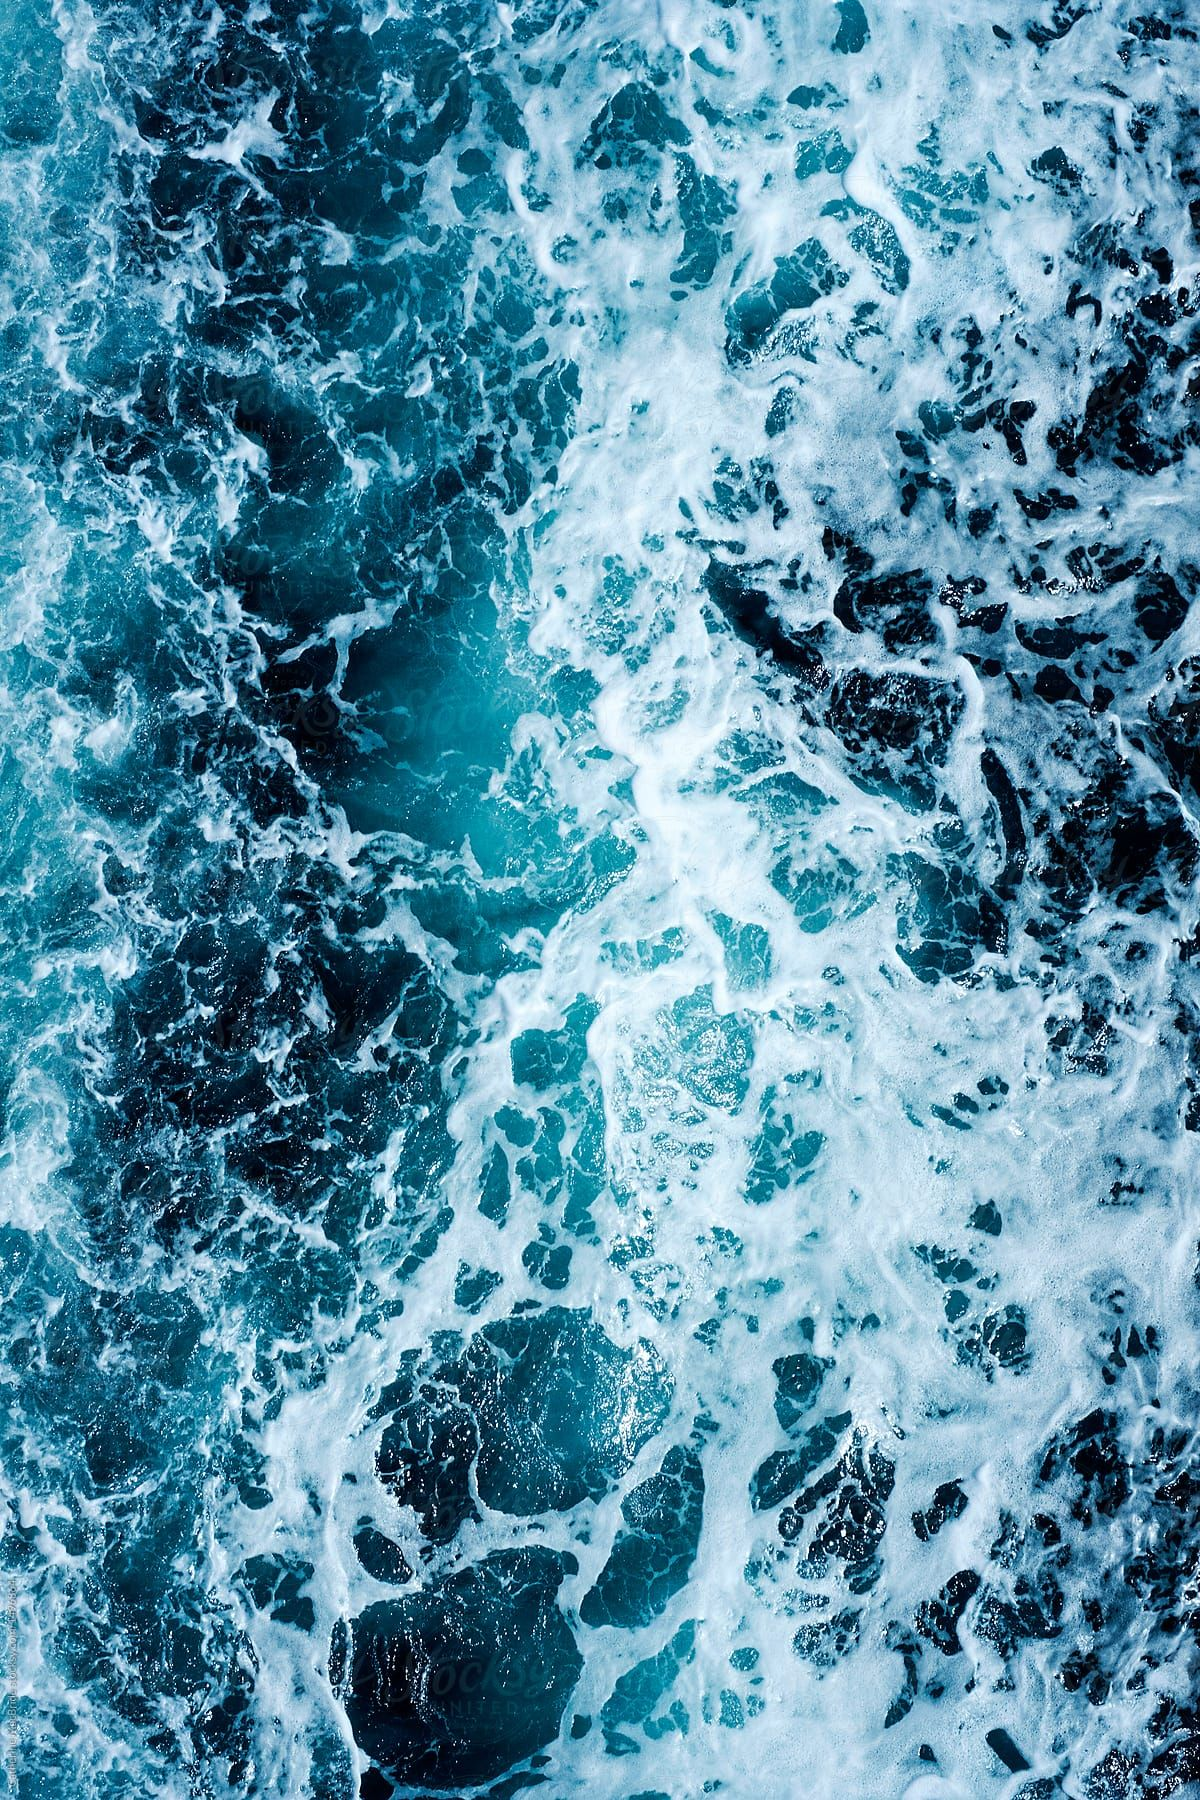 Rough Seas Download This High Resolution Stock Photo By Catherine Macbride From Stocksy Unit Ocean Wallpaper Aesthetic Wallpapers Aesthetic Iphone Wallpaper